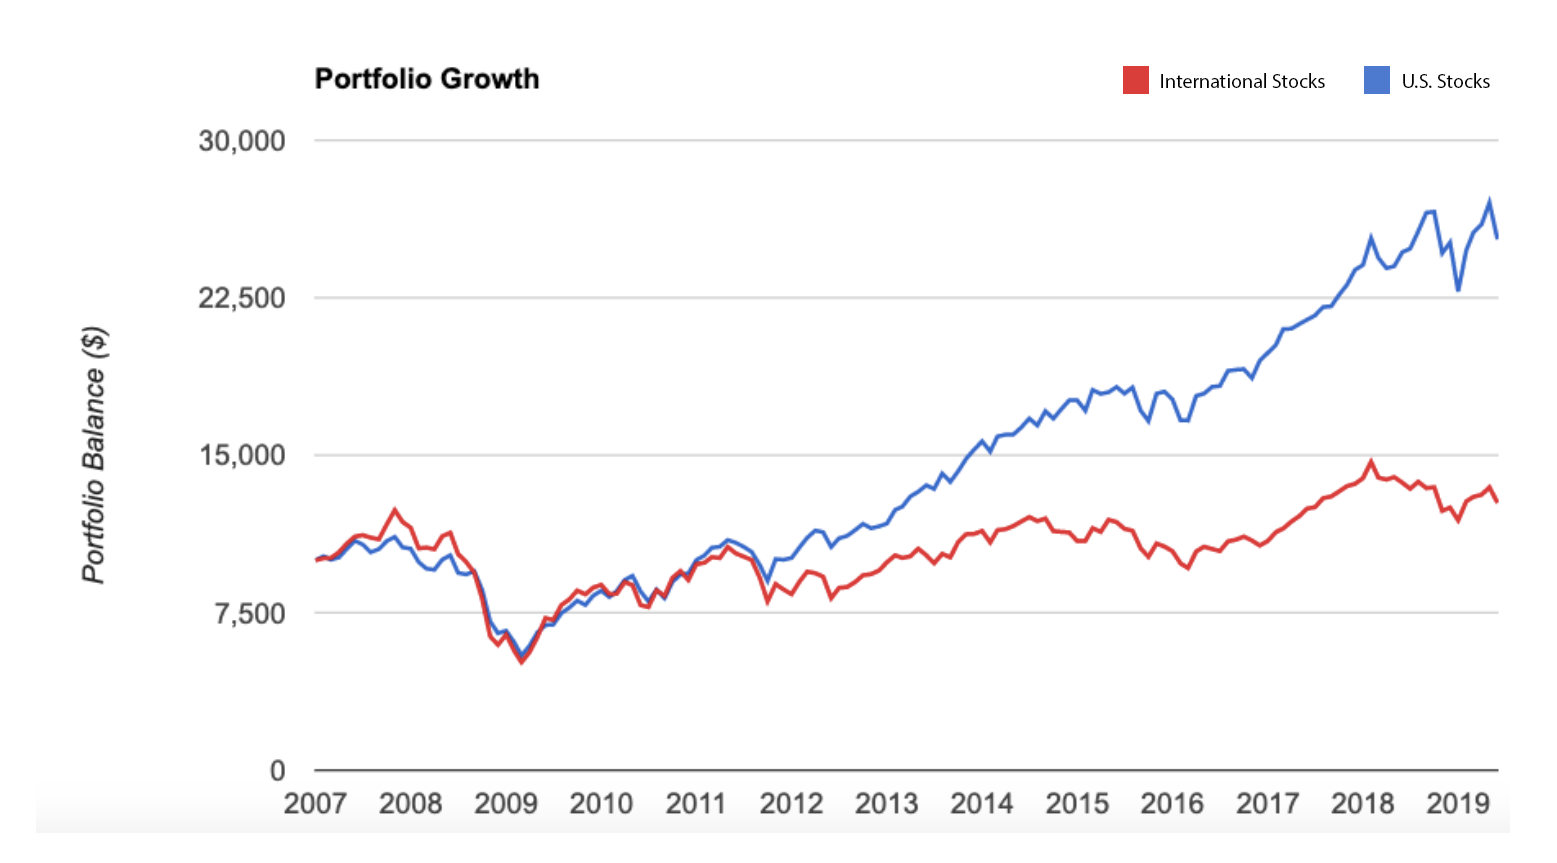 International Stocks Are Now Getting Left Behind - January 2008-June 4, 2019